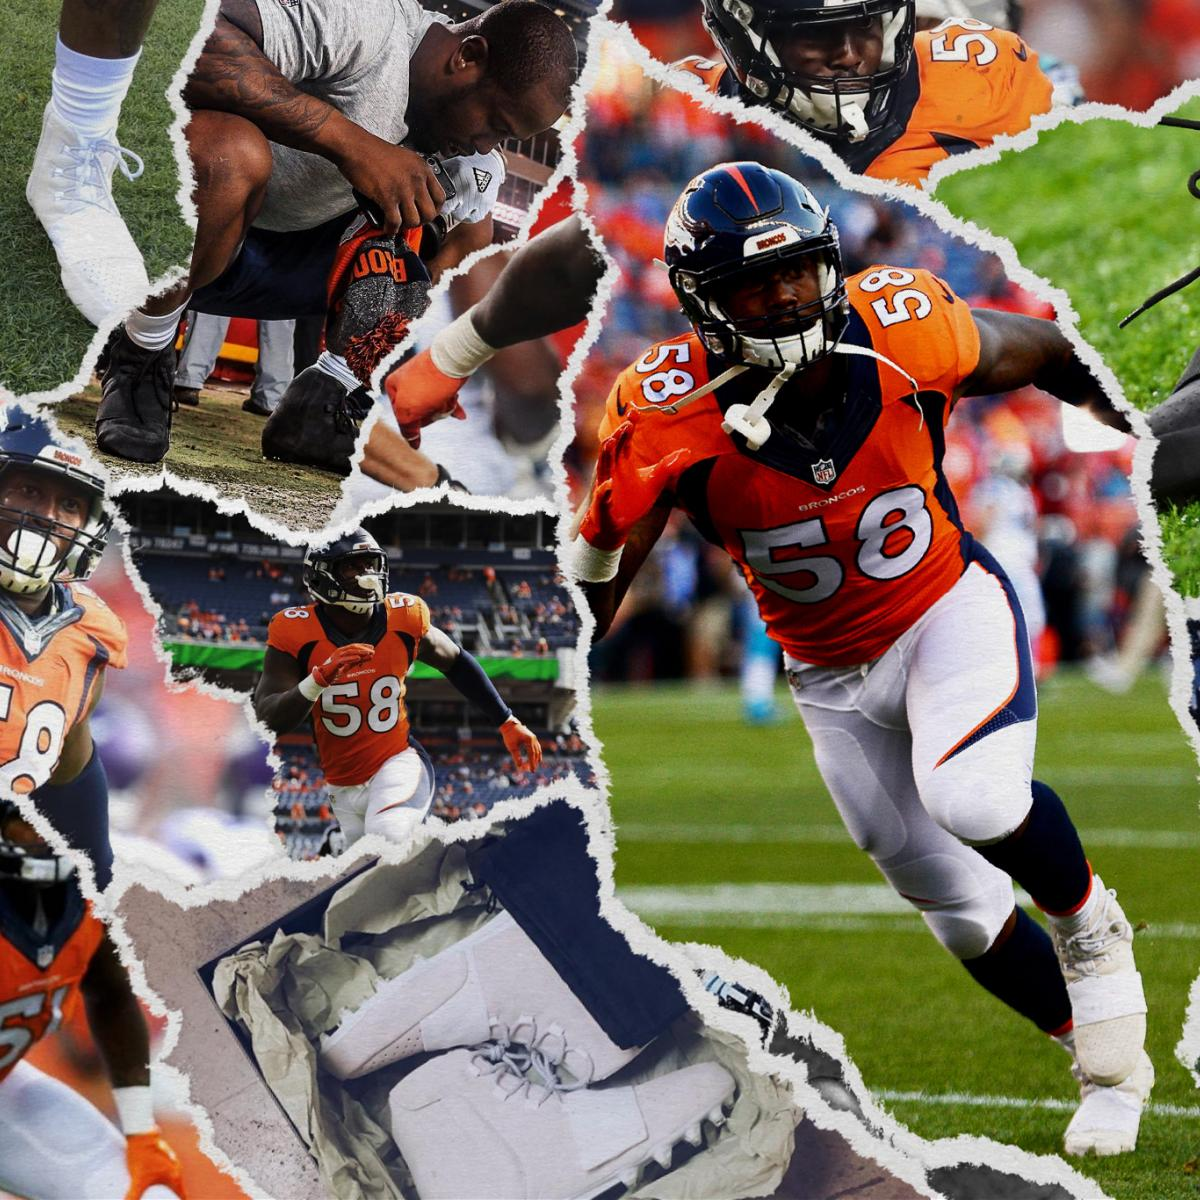 af42e2284be7c Von Miller  The Man Who Brought Yeezys to NFL